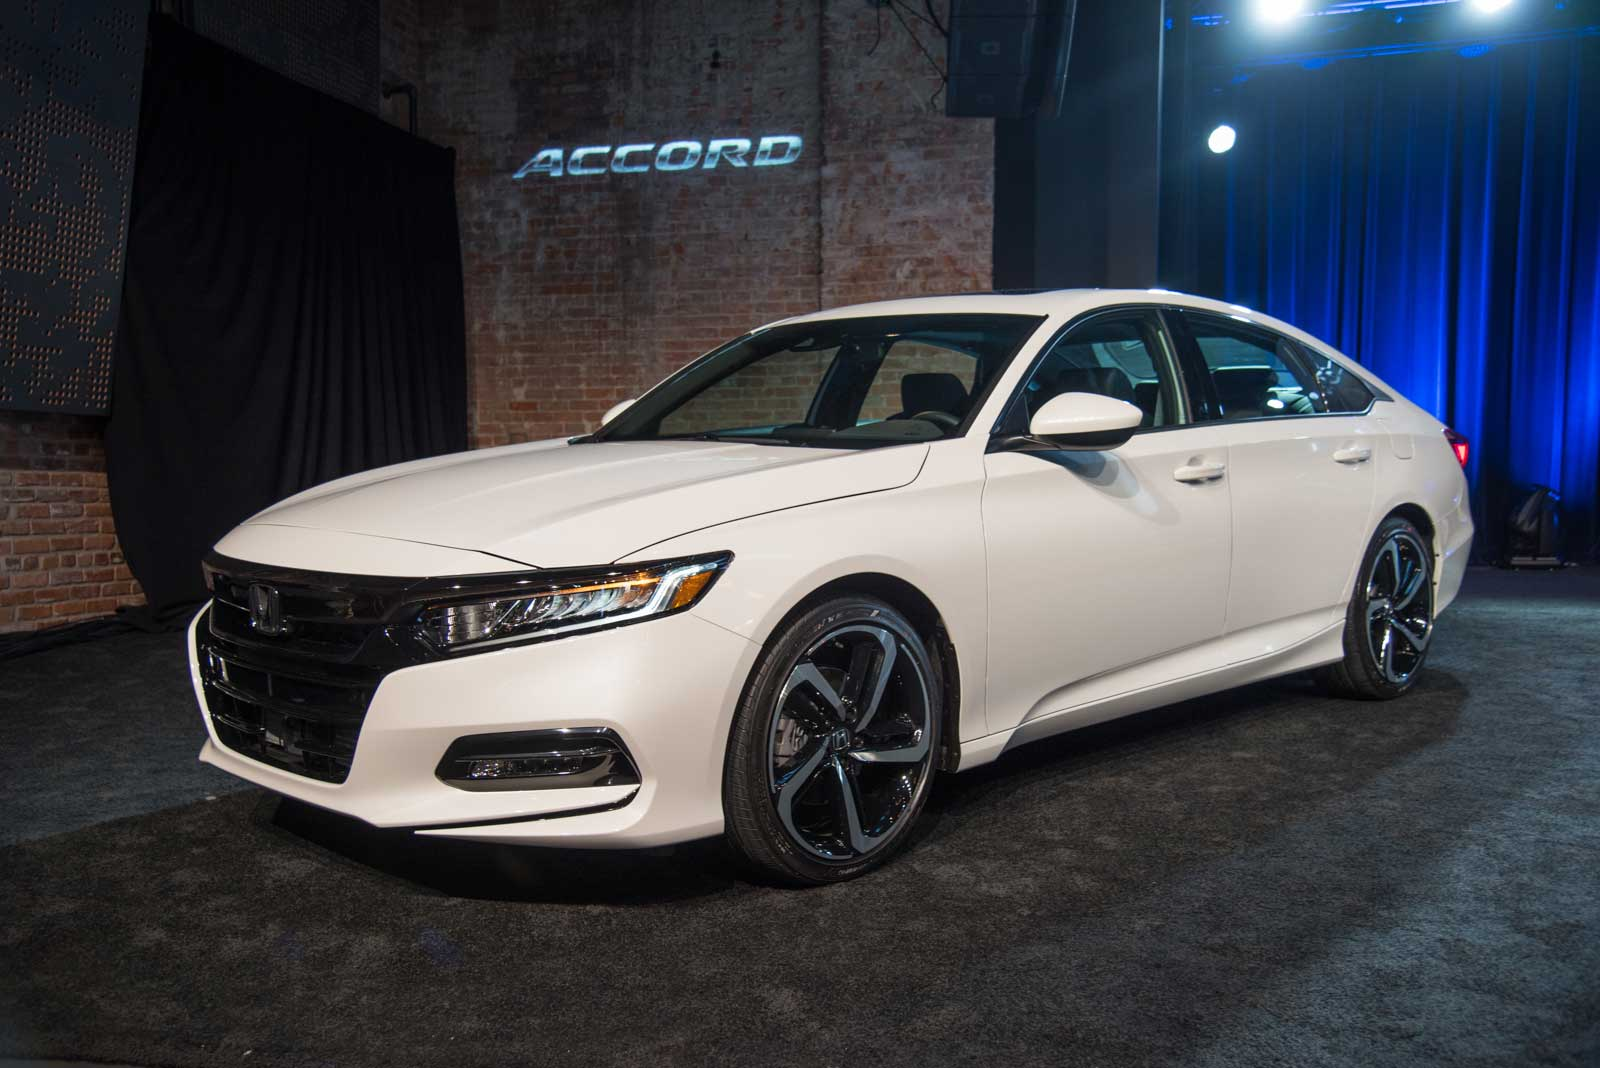 2018 Honda Accord Debuts With Turbo Engines, 10-Speed ...